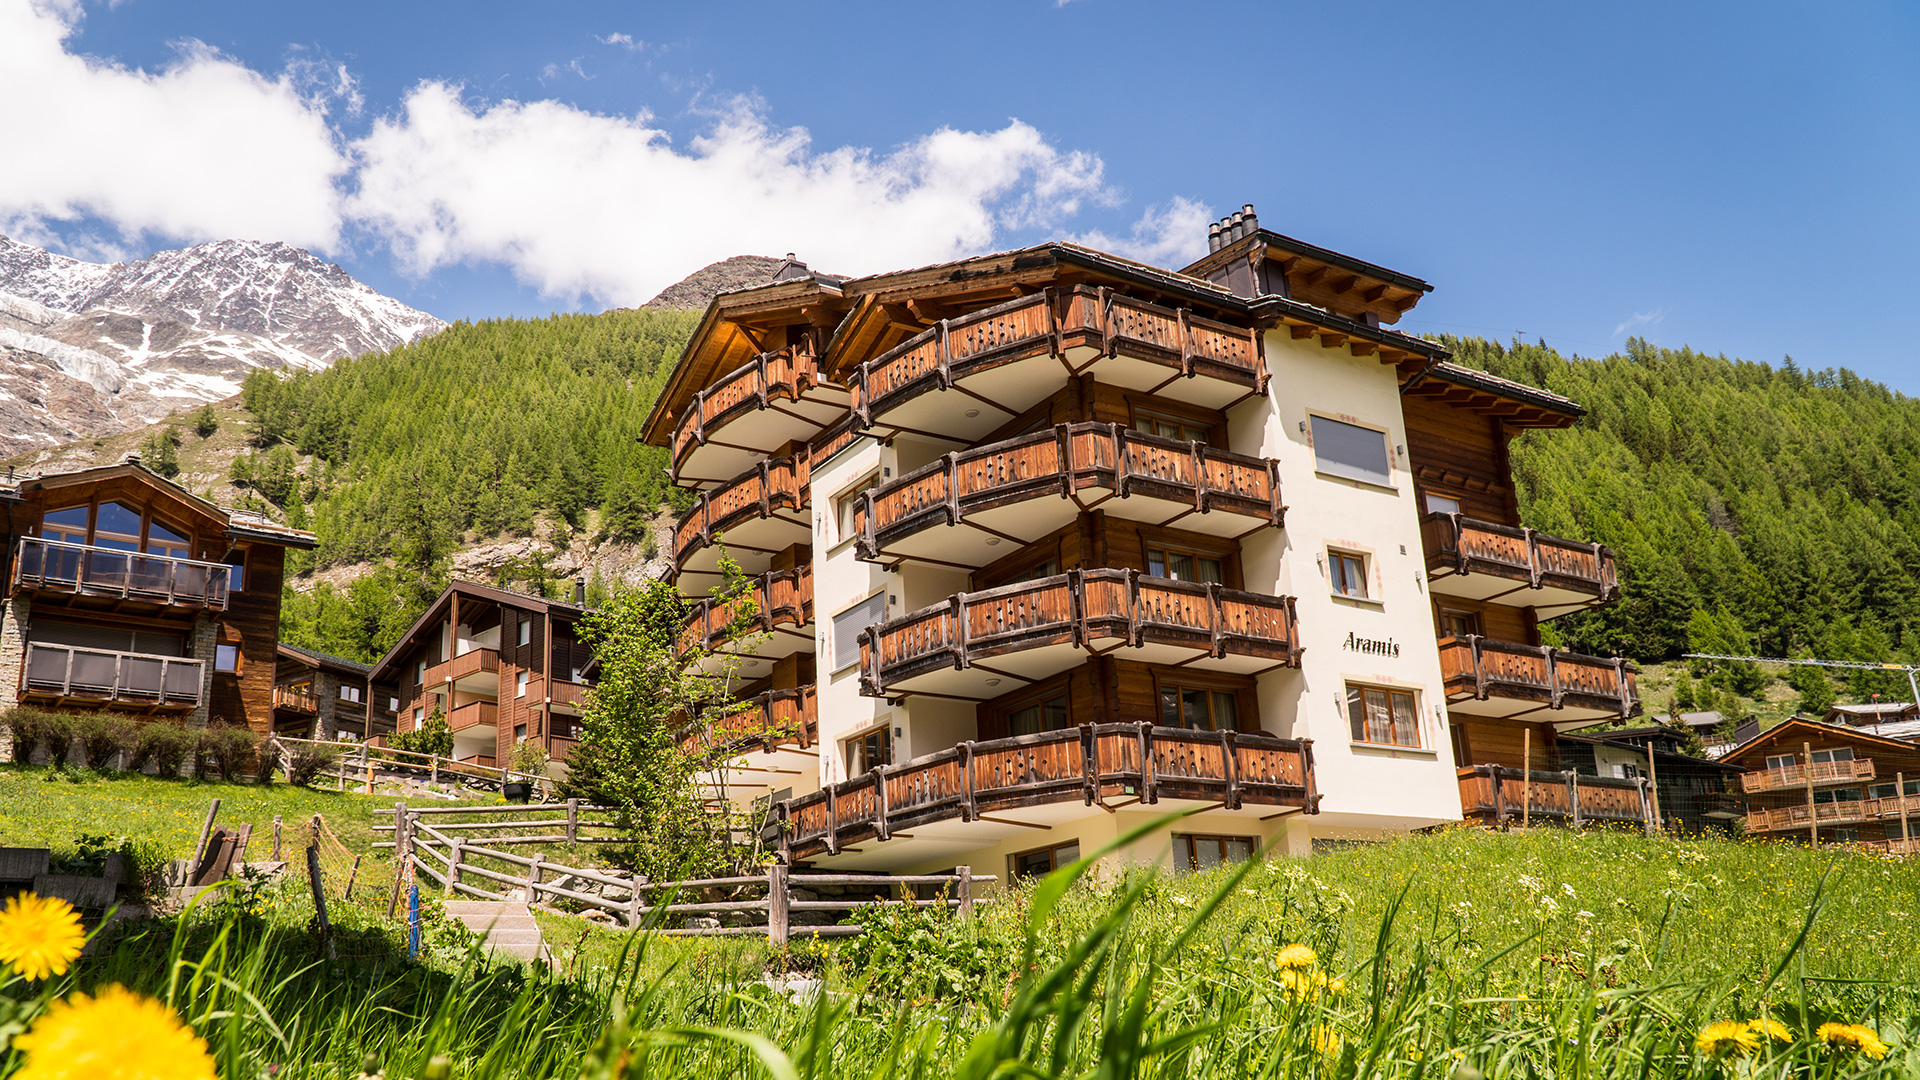 Chalet Aramis 3.1 Apartments, Switzerland